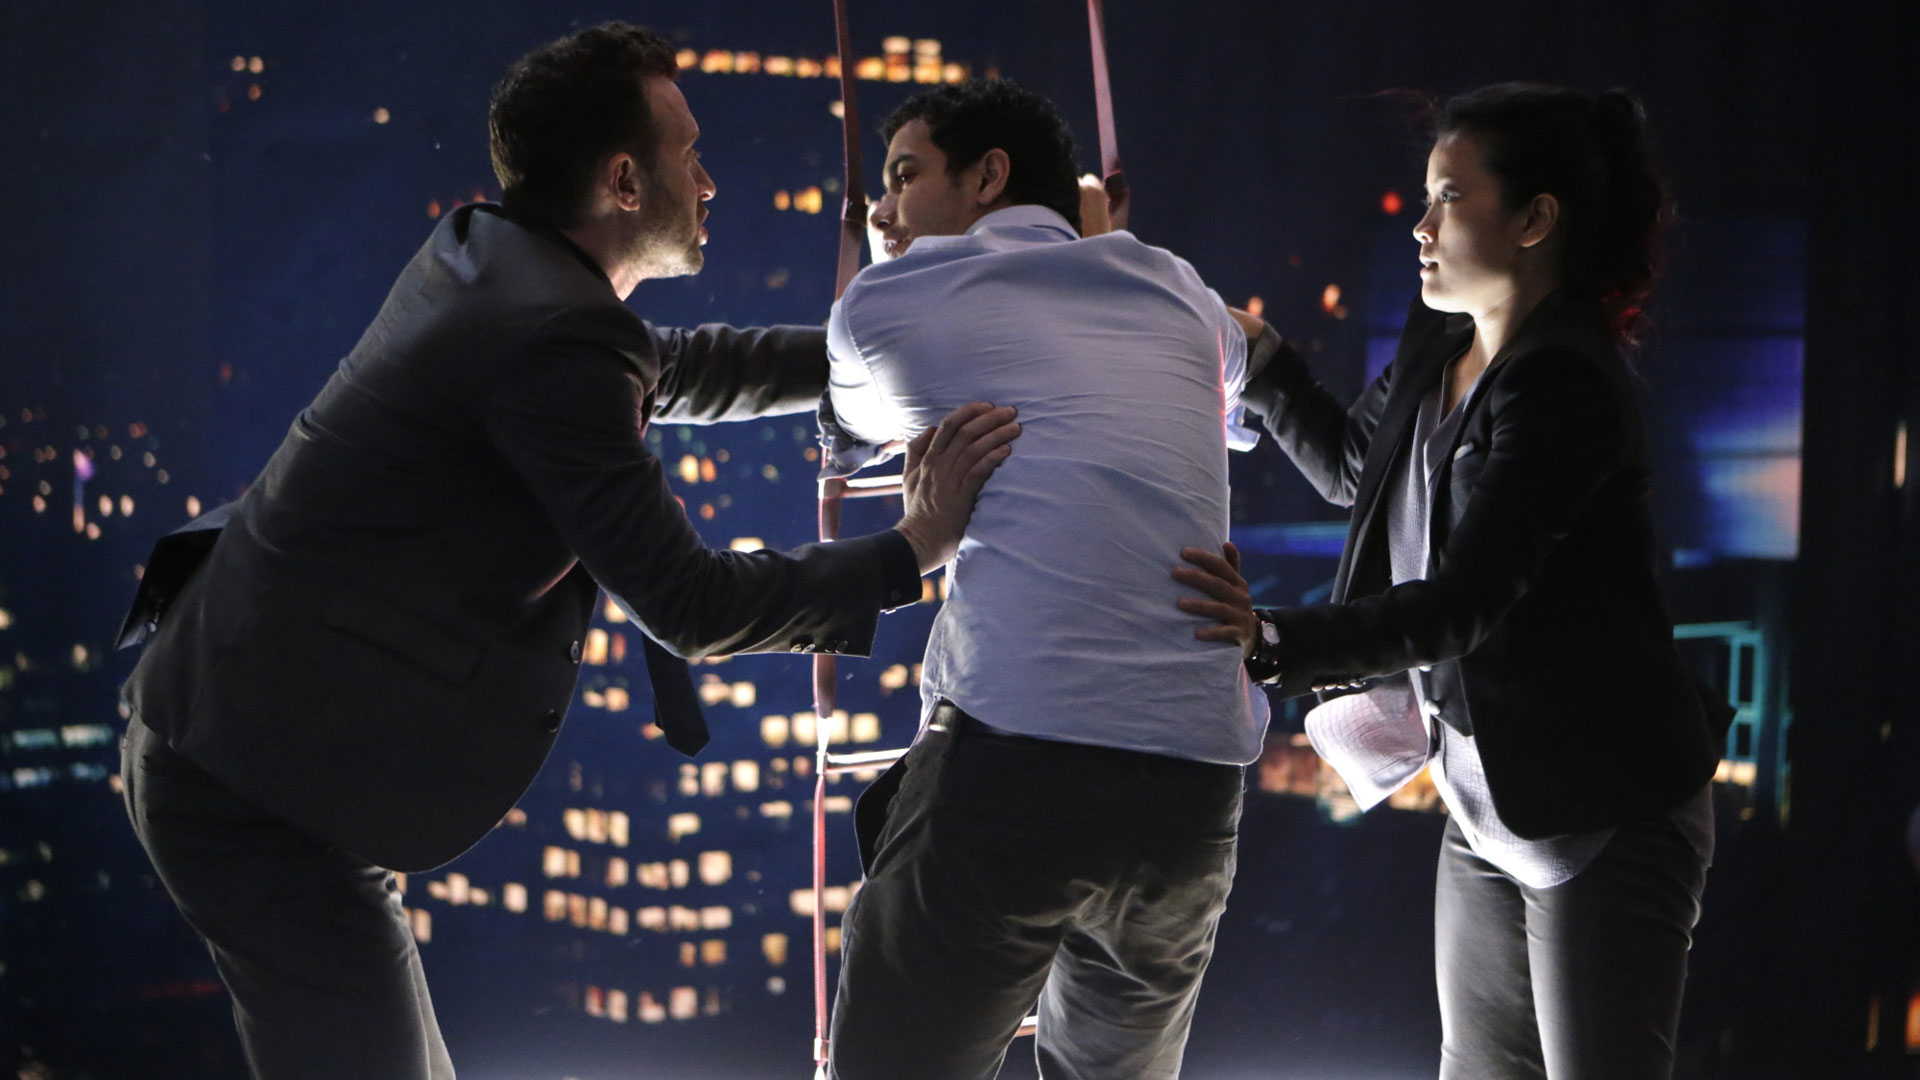 Eddie Kaye Thomas as Toby Curtis, Elyes Gabel as Walter O'Brien, and Jadyn Wong as Happy Quinn